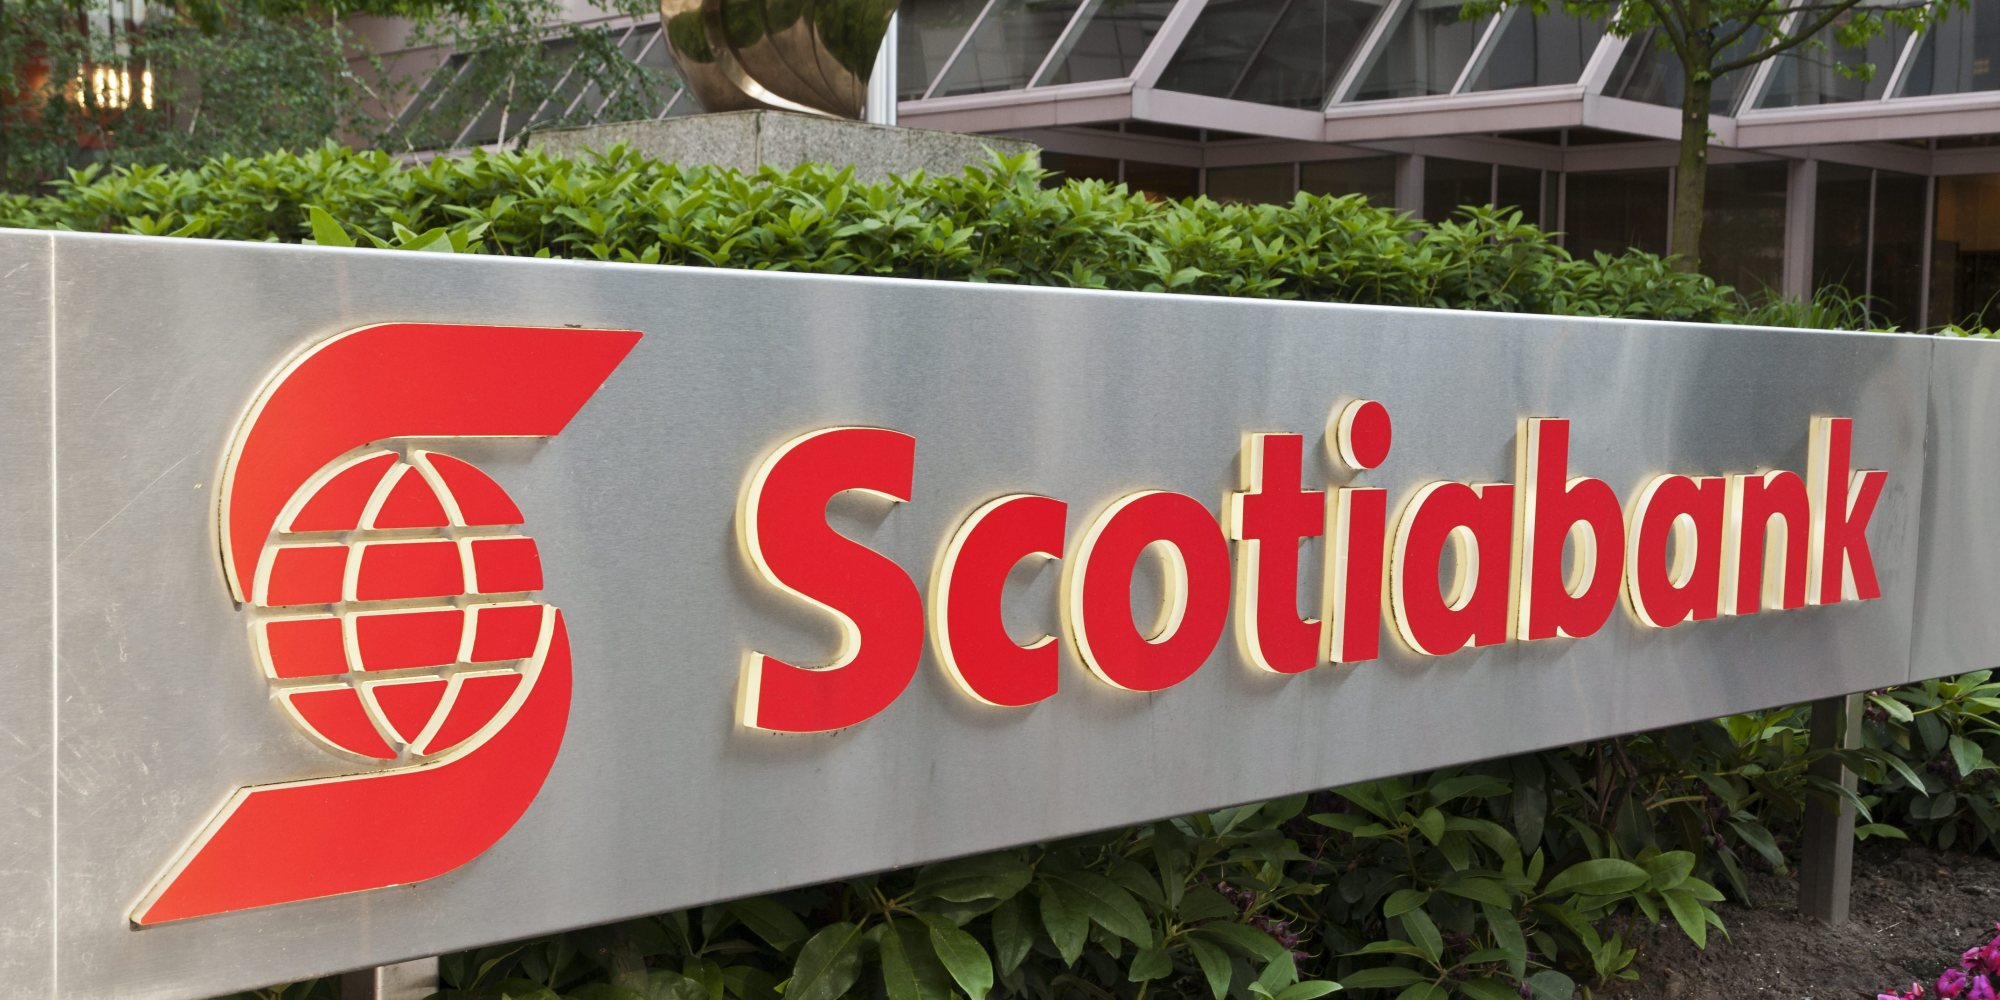 Scotiabank: Scotiabank Unpaid Overtime Class-Action Lawsuit Reaches